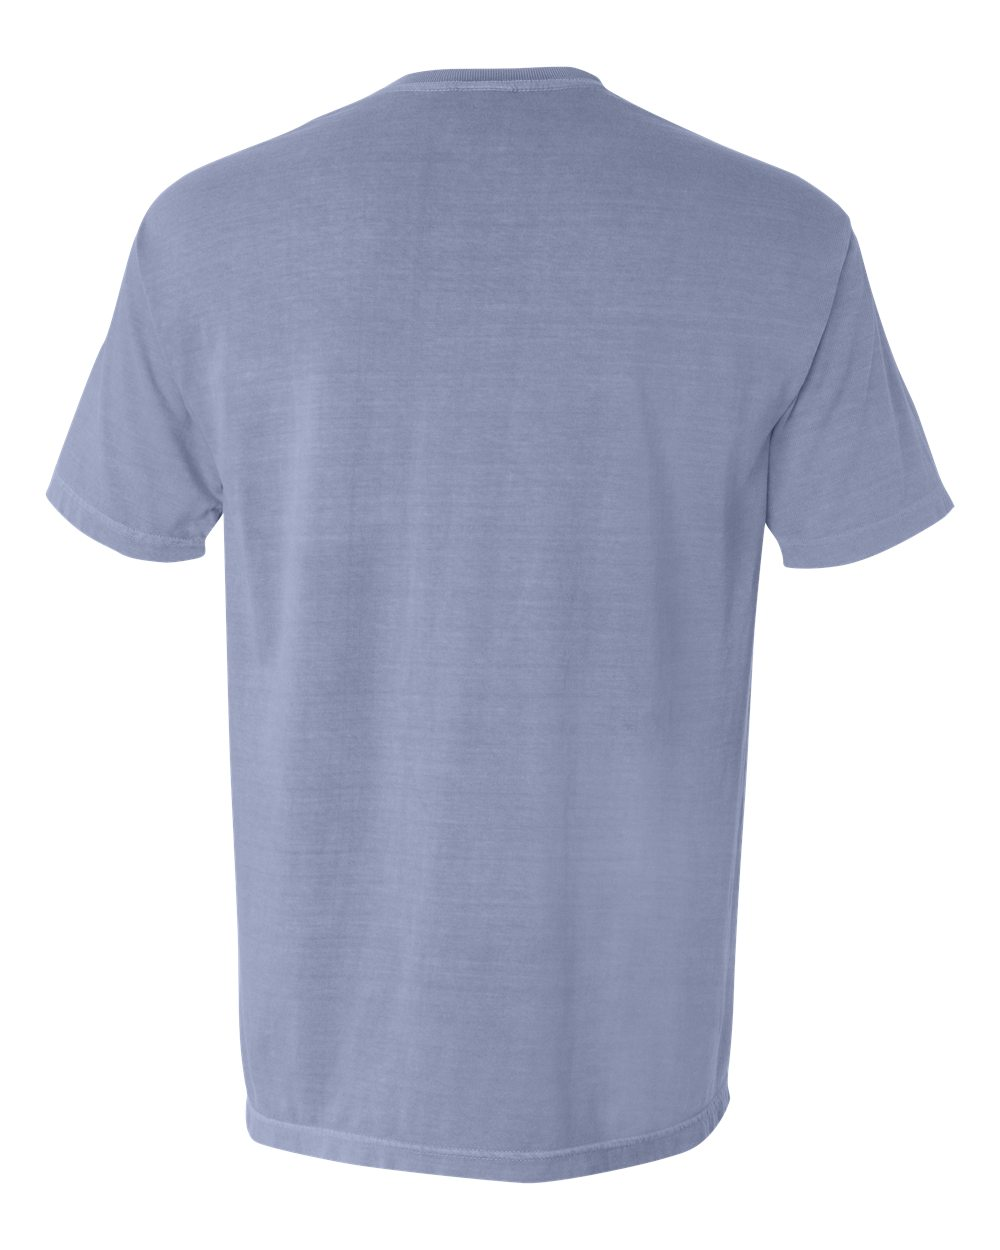 Comfort-Colors-Men-039-s-6-1-oz-Garment-Dyed-Pocket-T-Shirt-6030CC-S-3XL thumbnail 46